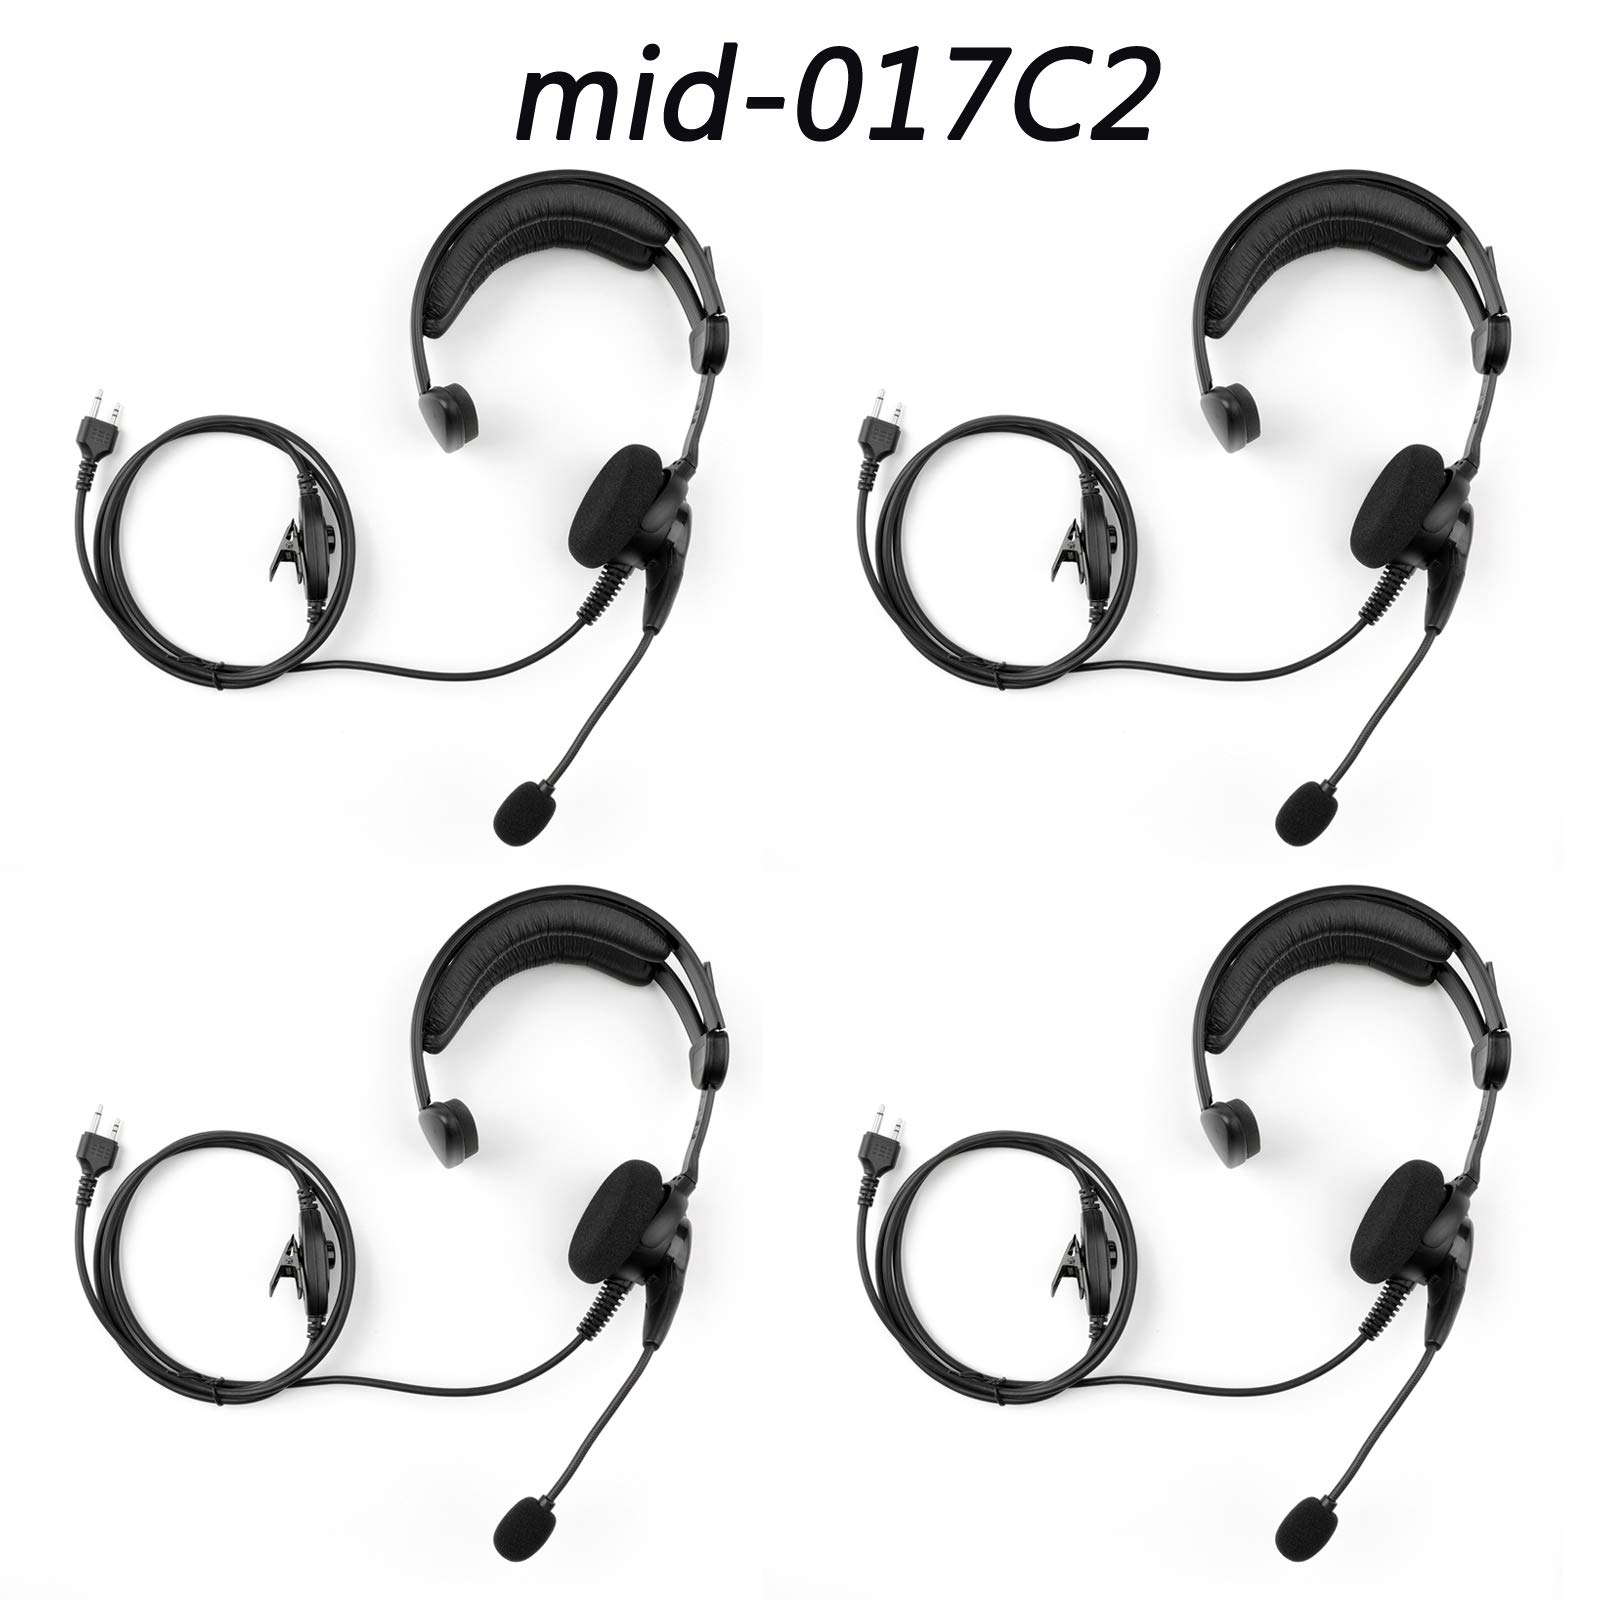 Artudatech 4PCS Over-The-Head Earpiece Headset Mid-017C2 Microphone Noise Cancelling